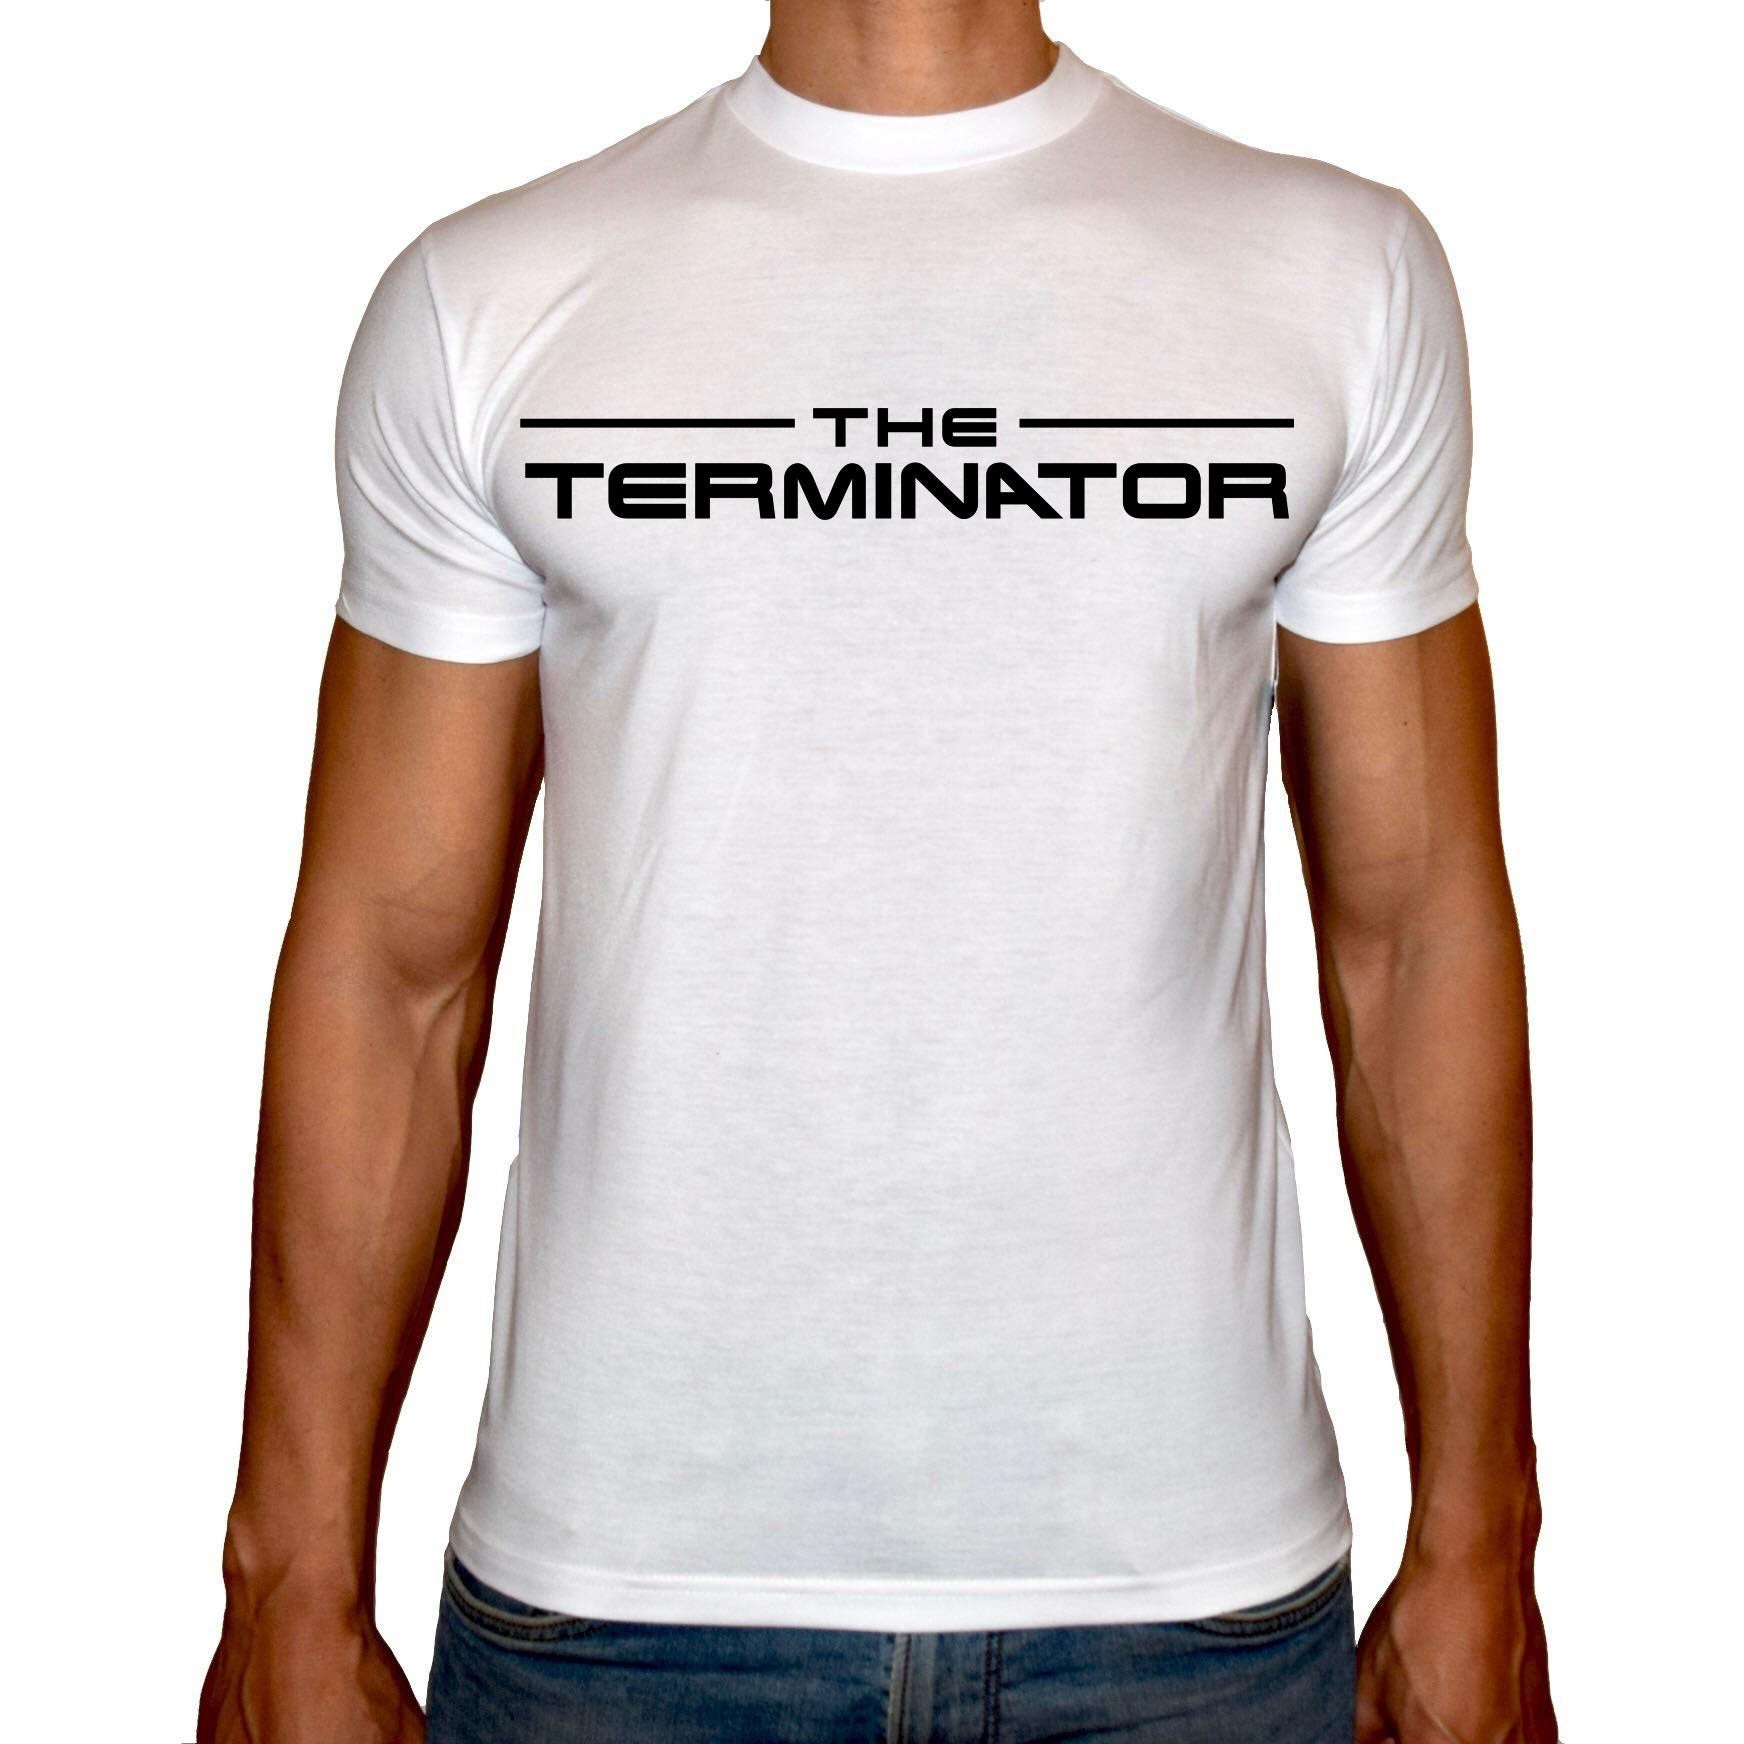 Phoenix WHITE Round Neck Printed T-Shirt Men (The terminator)